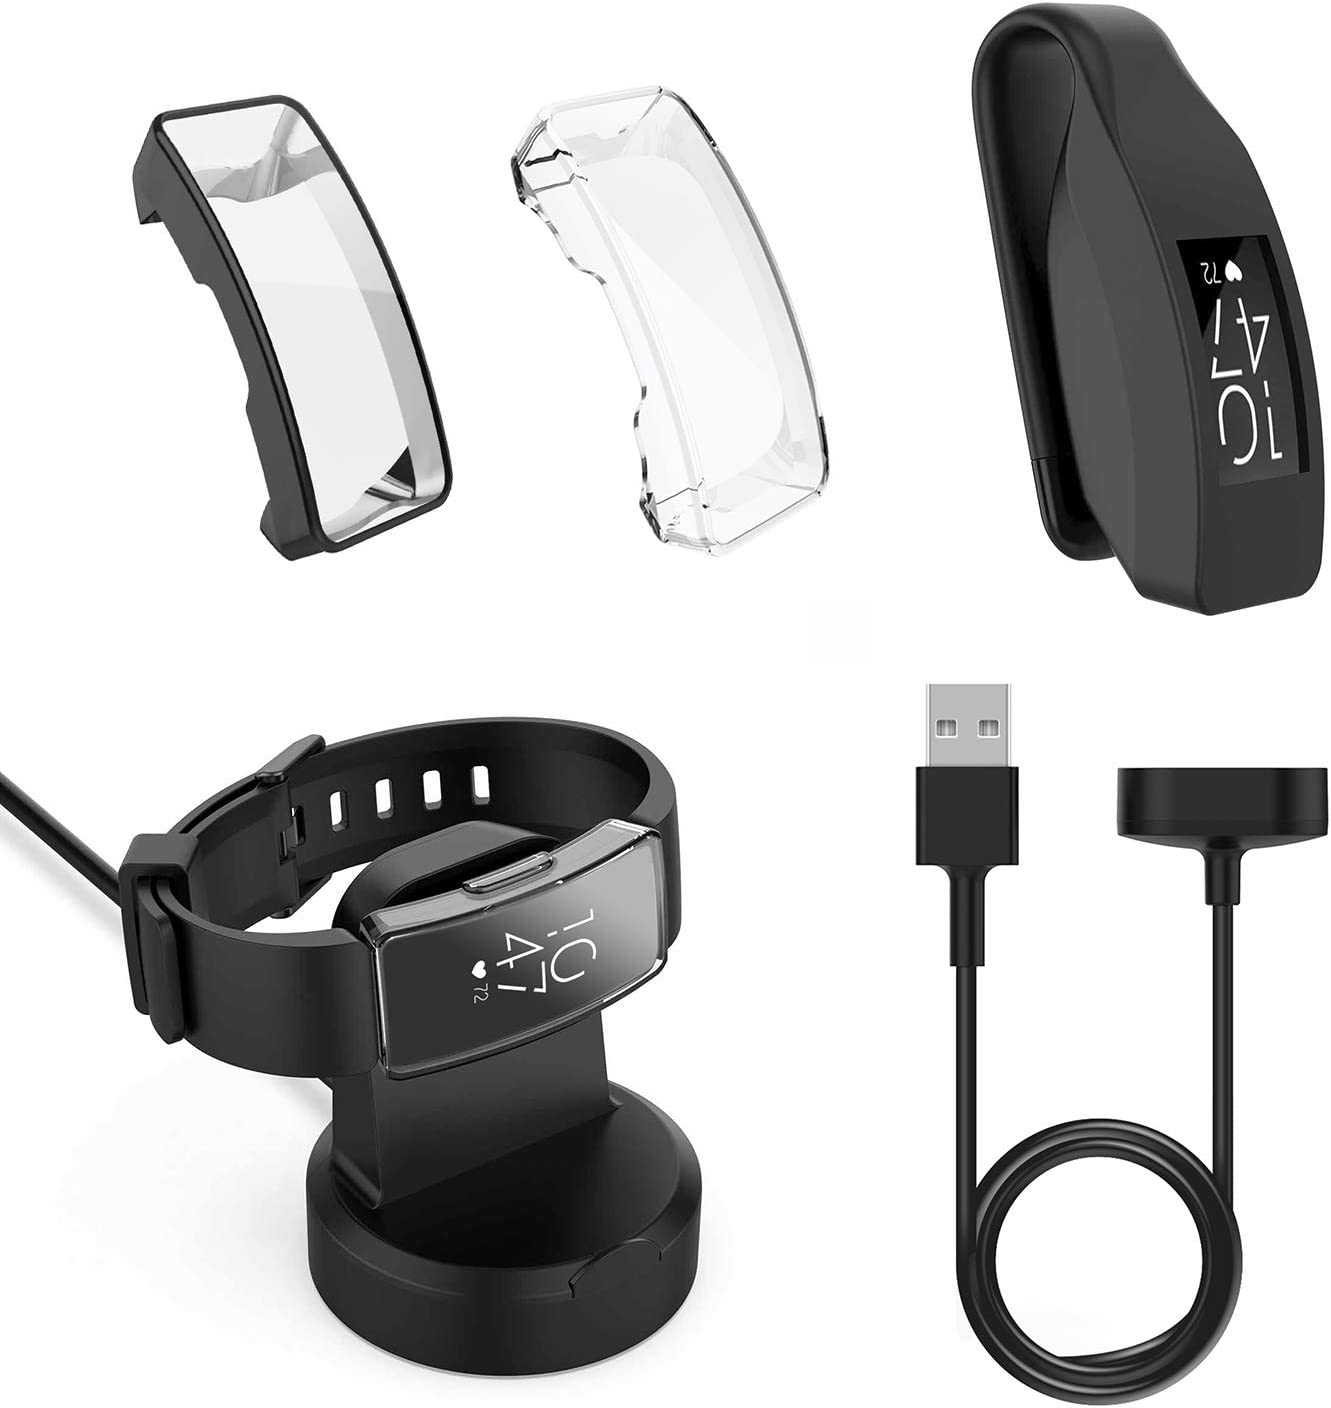 for Fitbit Inspire & Inspire HR Smartwatch Accessoory Kit, 5-in-1 Pack Includes Charger Stand, 3.3ft Charging USB Cable, Clip Holder and 2pcs Full Coverage Scratchproof Protective Case